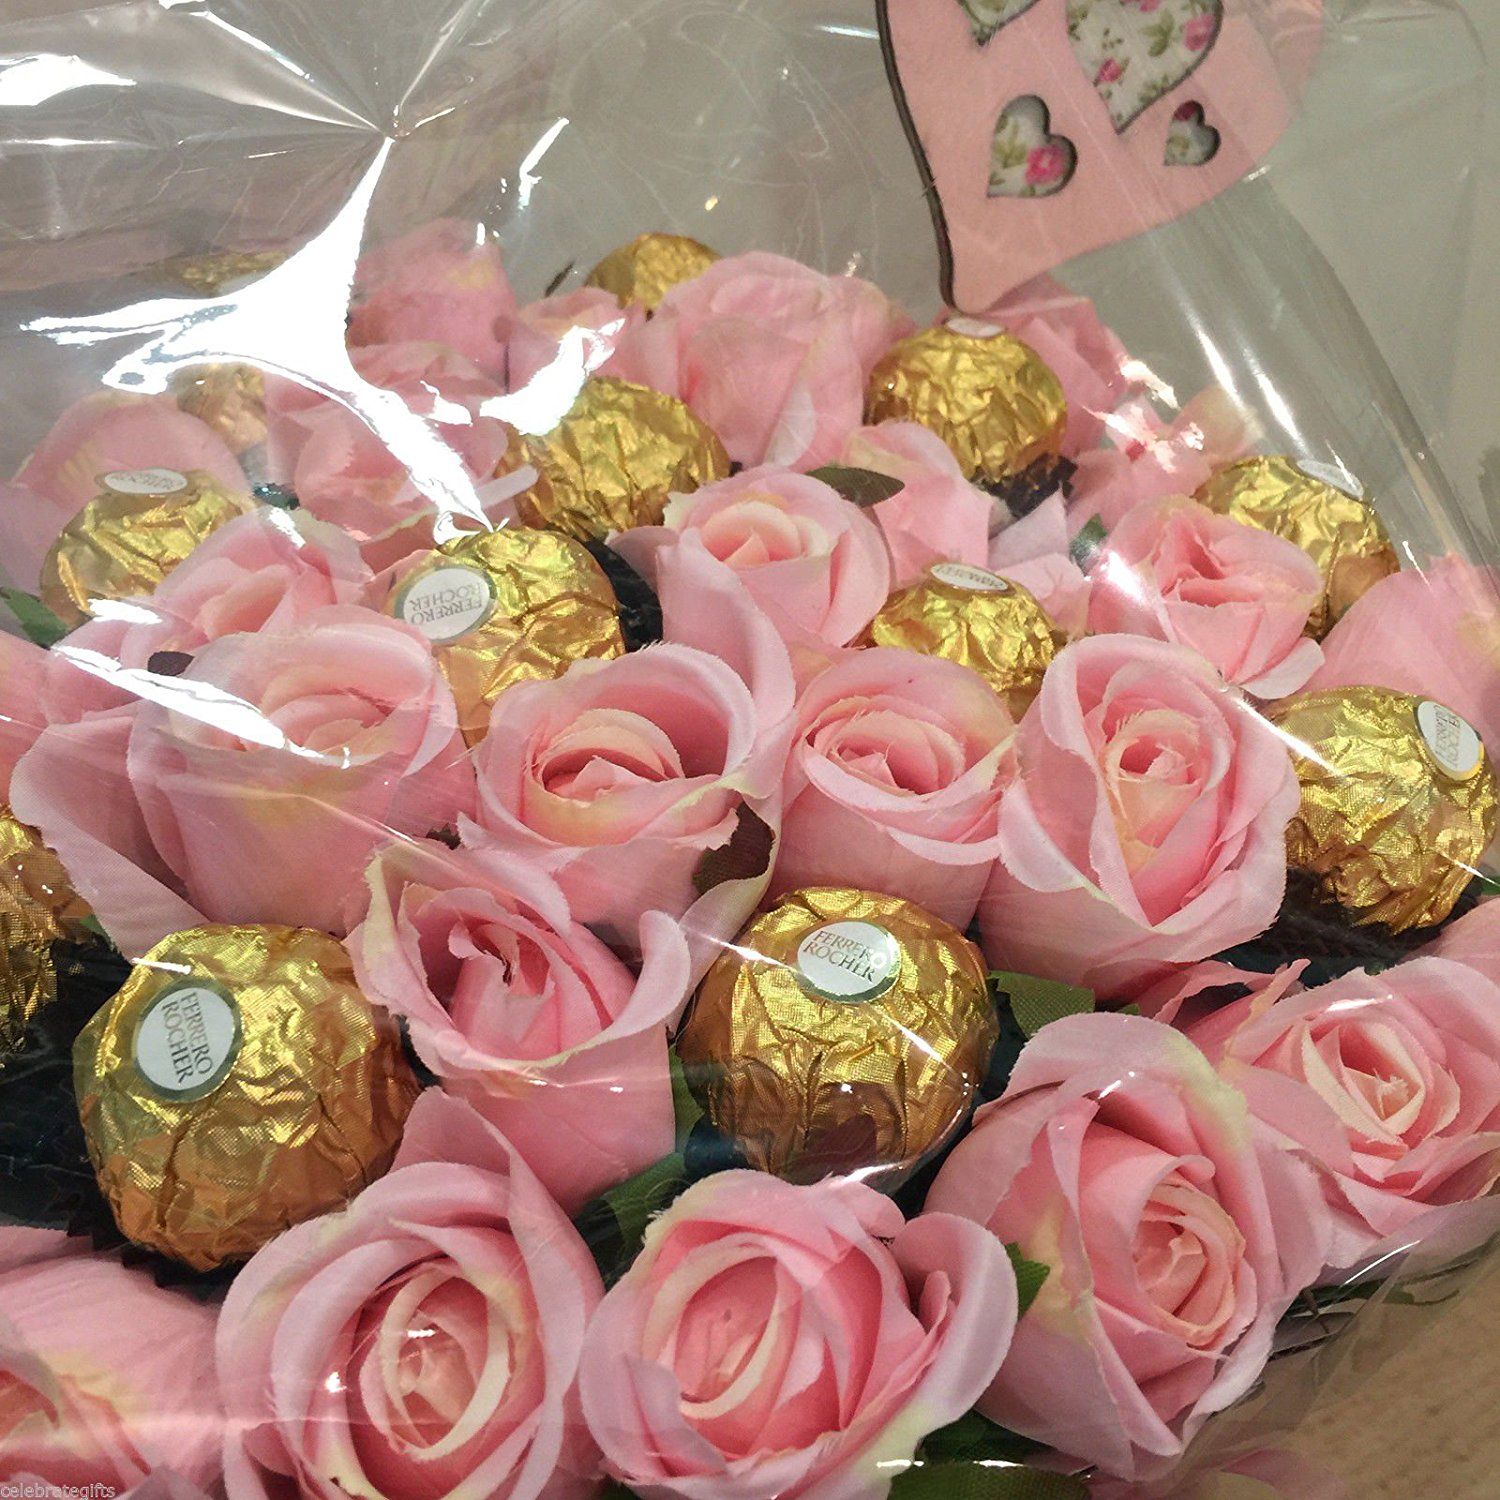 Luxury silk pink roses and ferrero rocher chocolate bouquet amazon luxury silk pink roses and ferrero rocher chocolate bouquet amazon izmirmasajfo